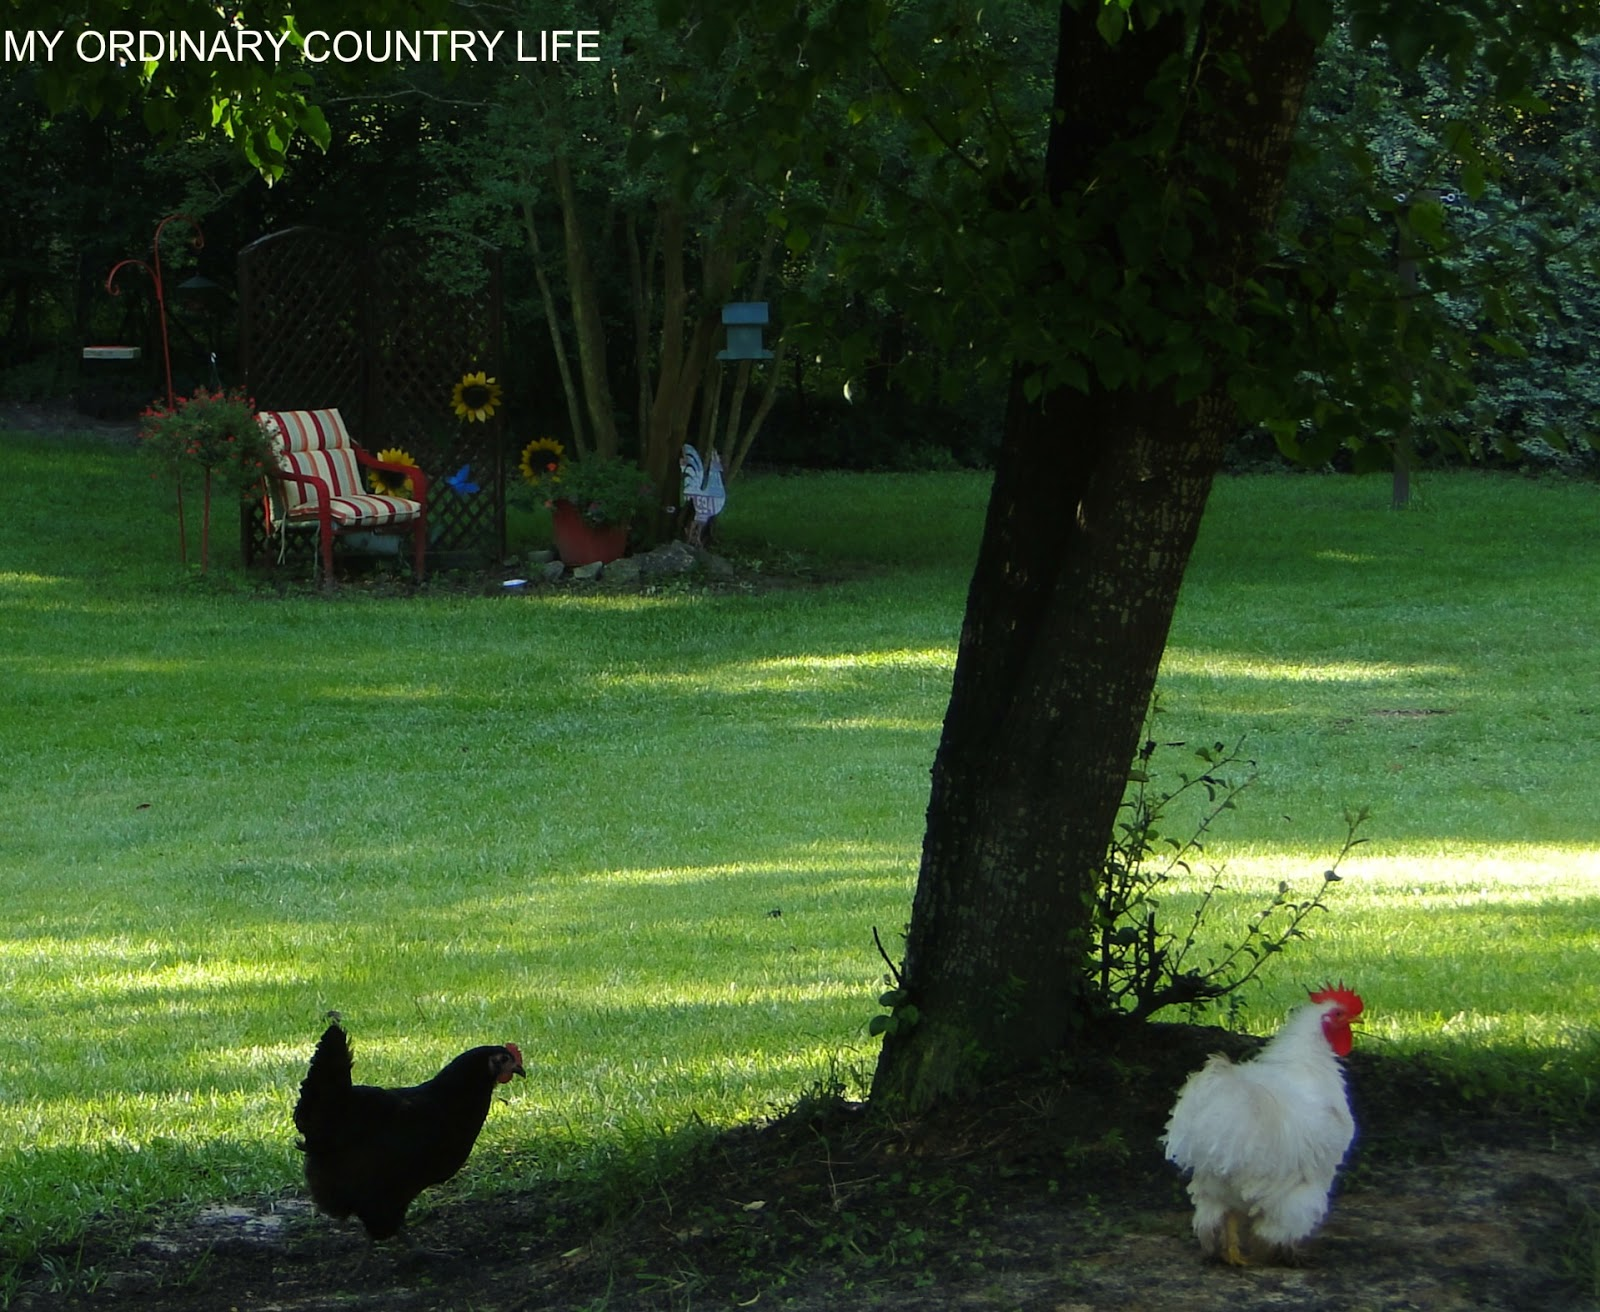 My Ordinary Country Life A Walkabout With The Chickens